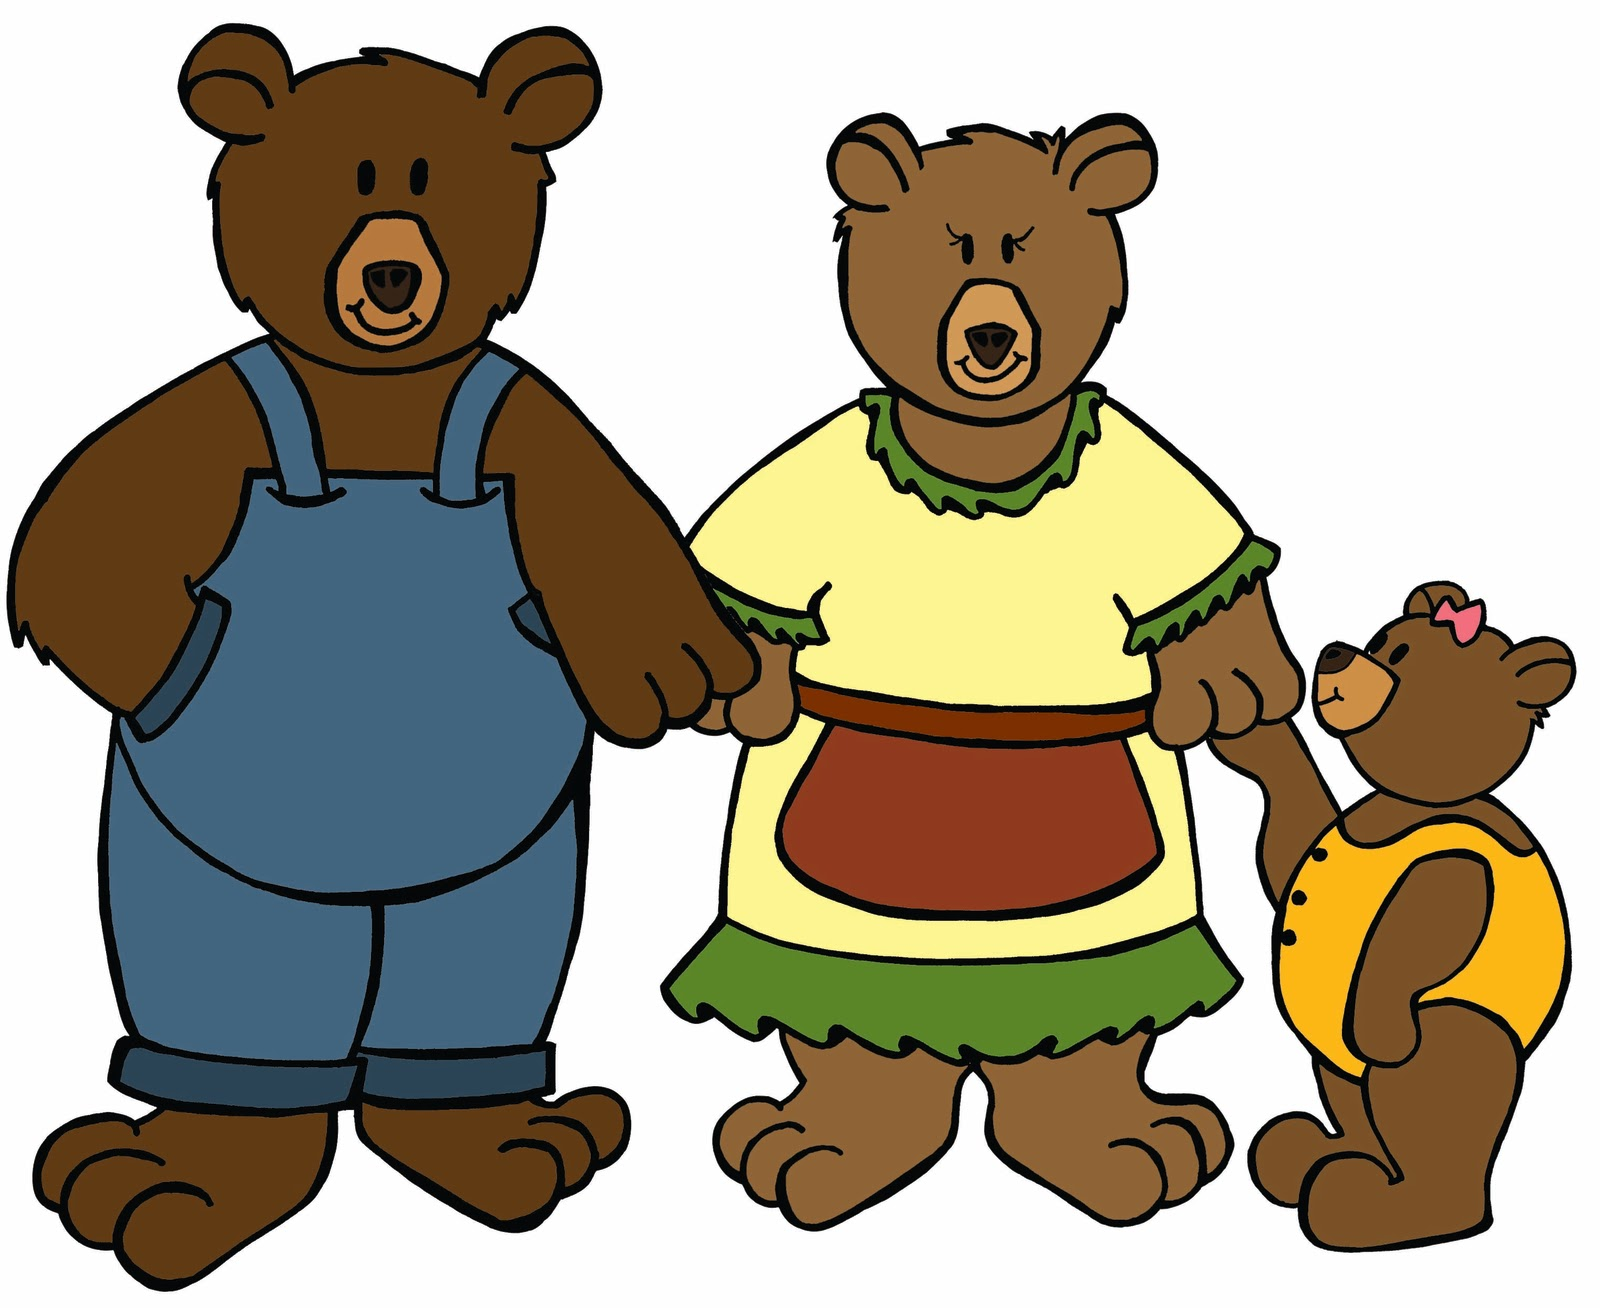 Brown Bear clipart 3 bears Cliparts Clipart The And Three